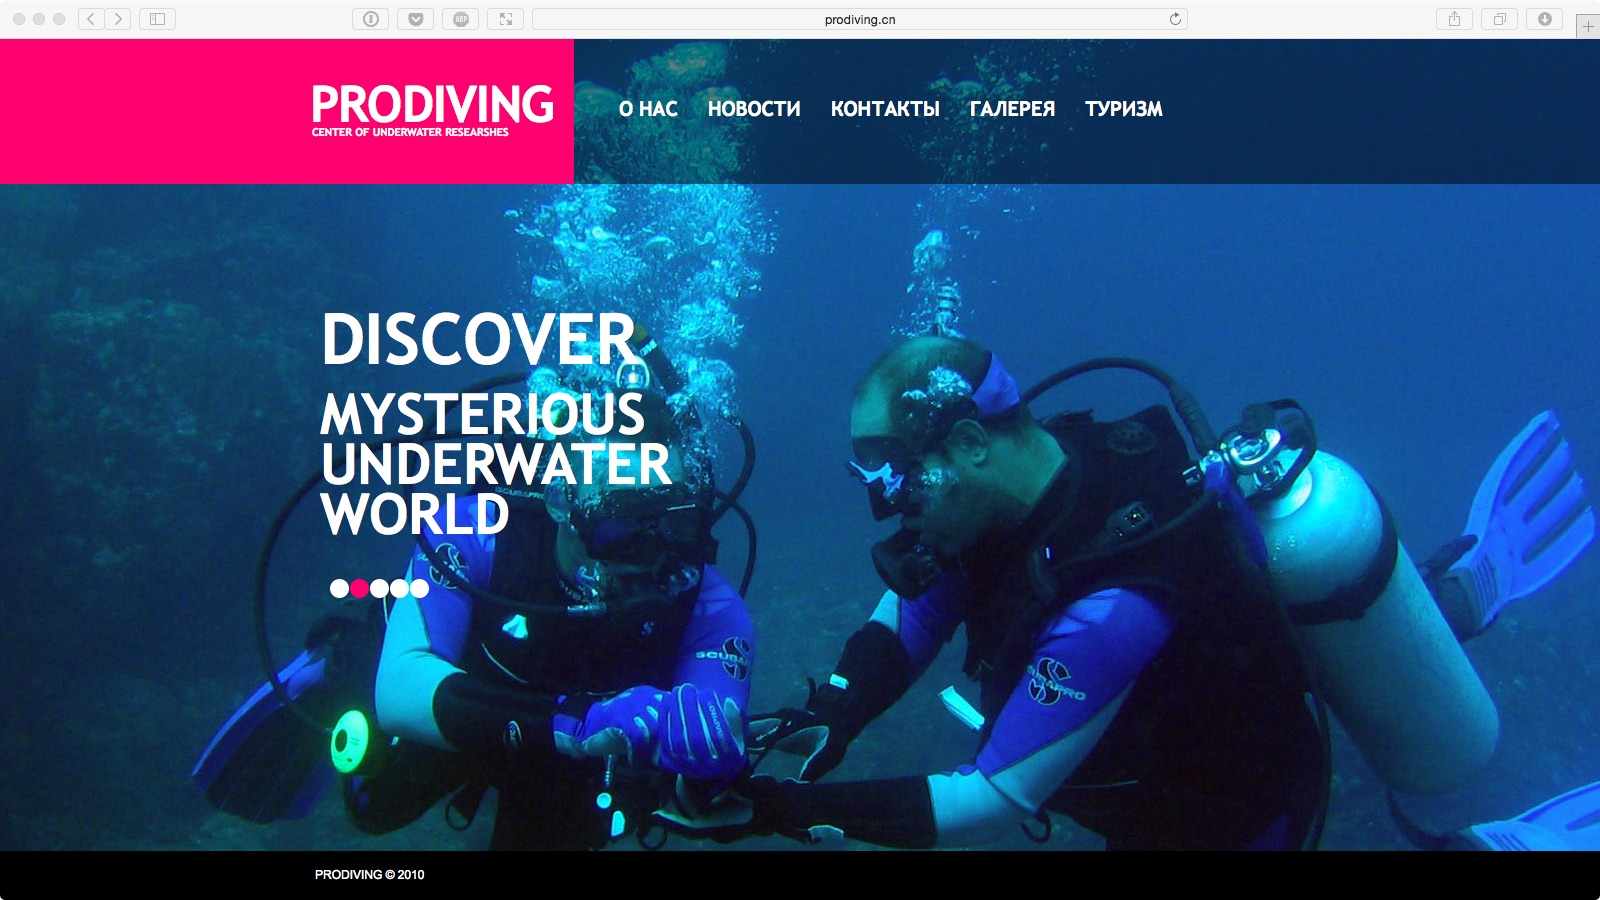 Underwater researches center: prodiving.cn